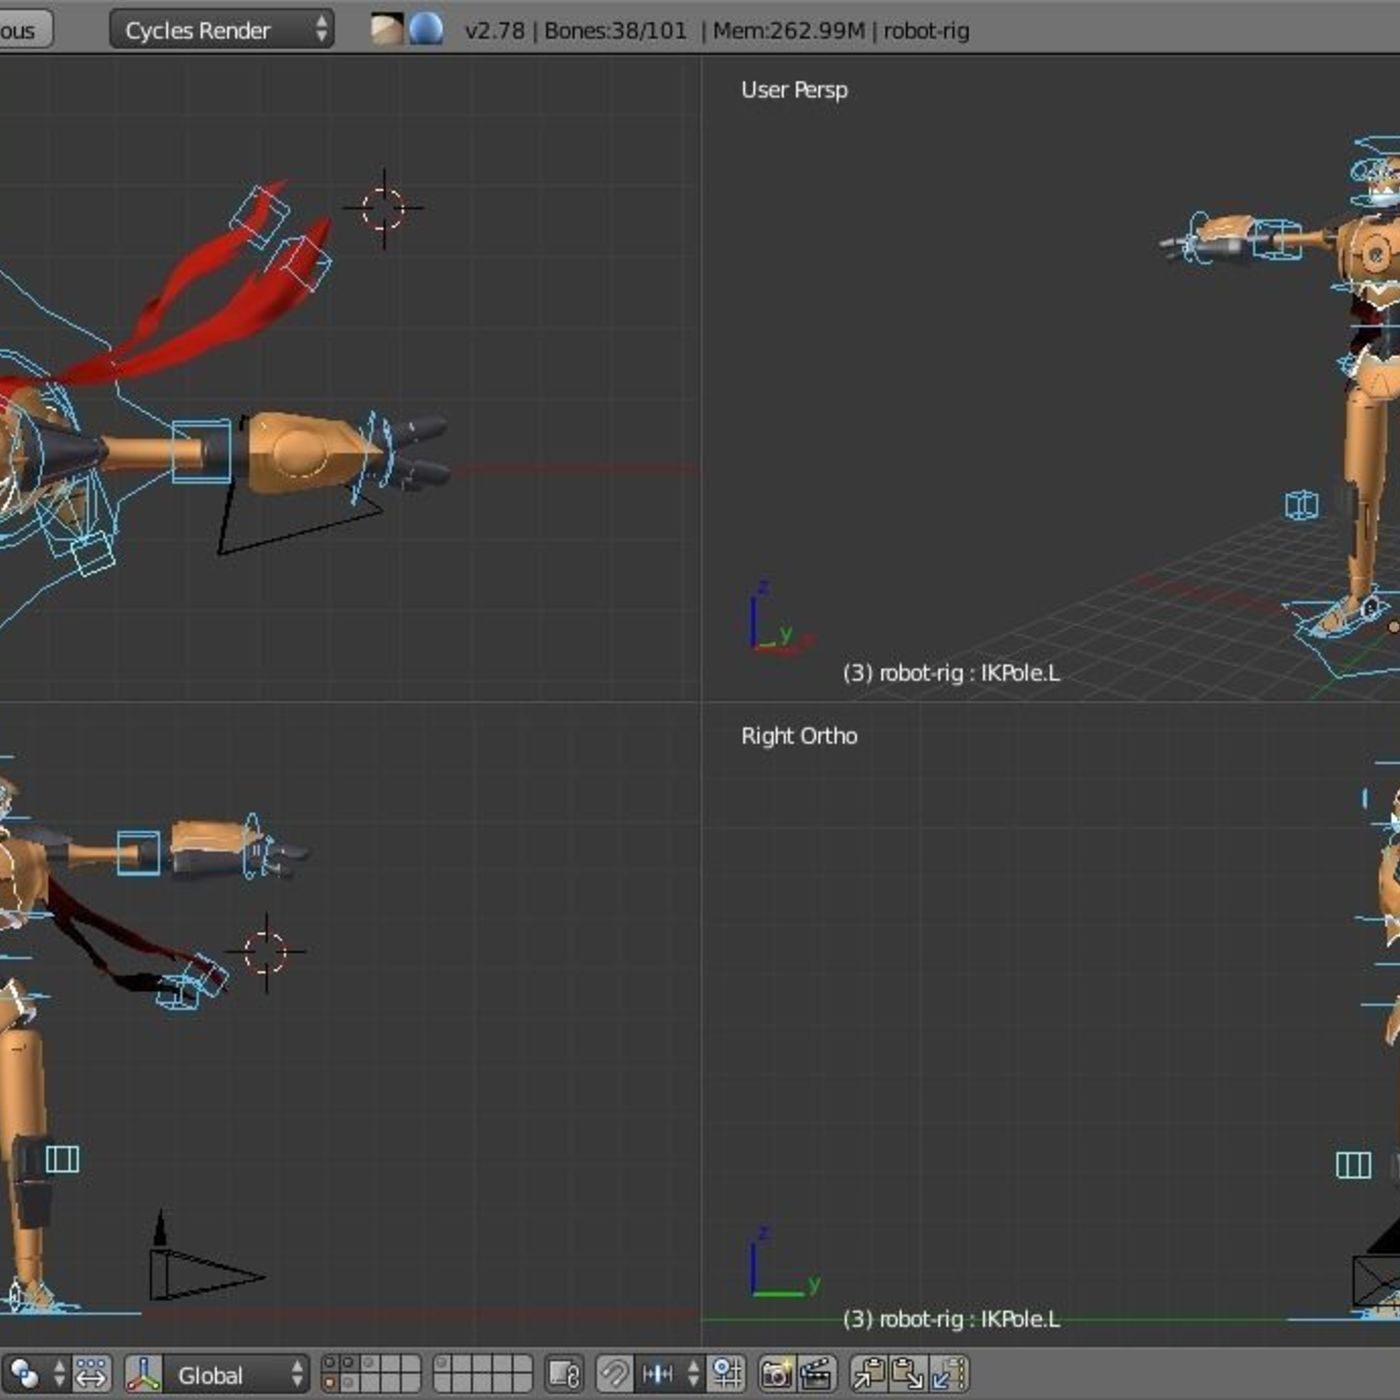 Skater robot_rigged character